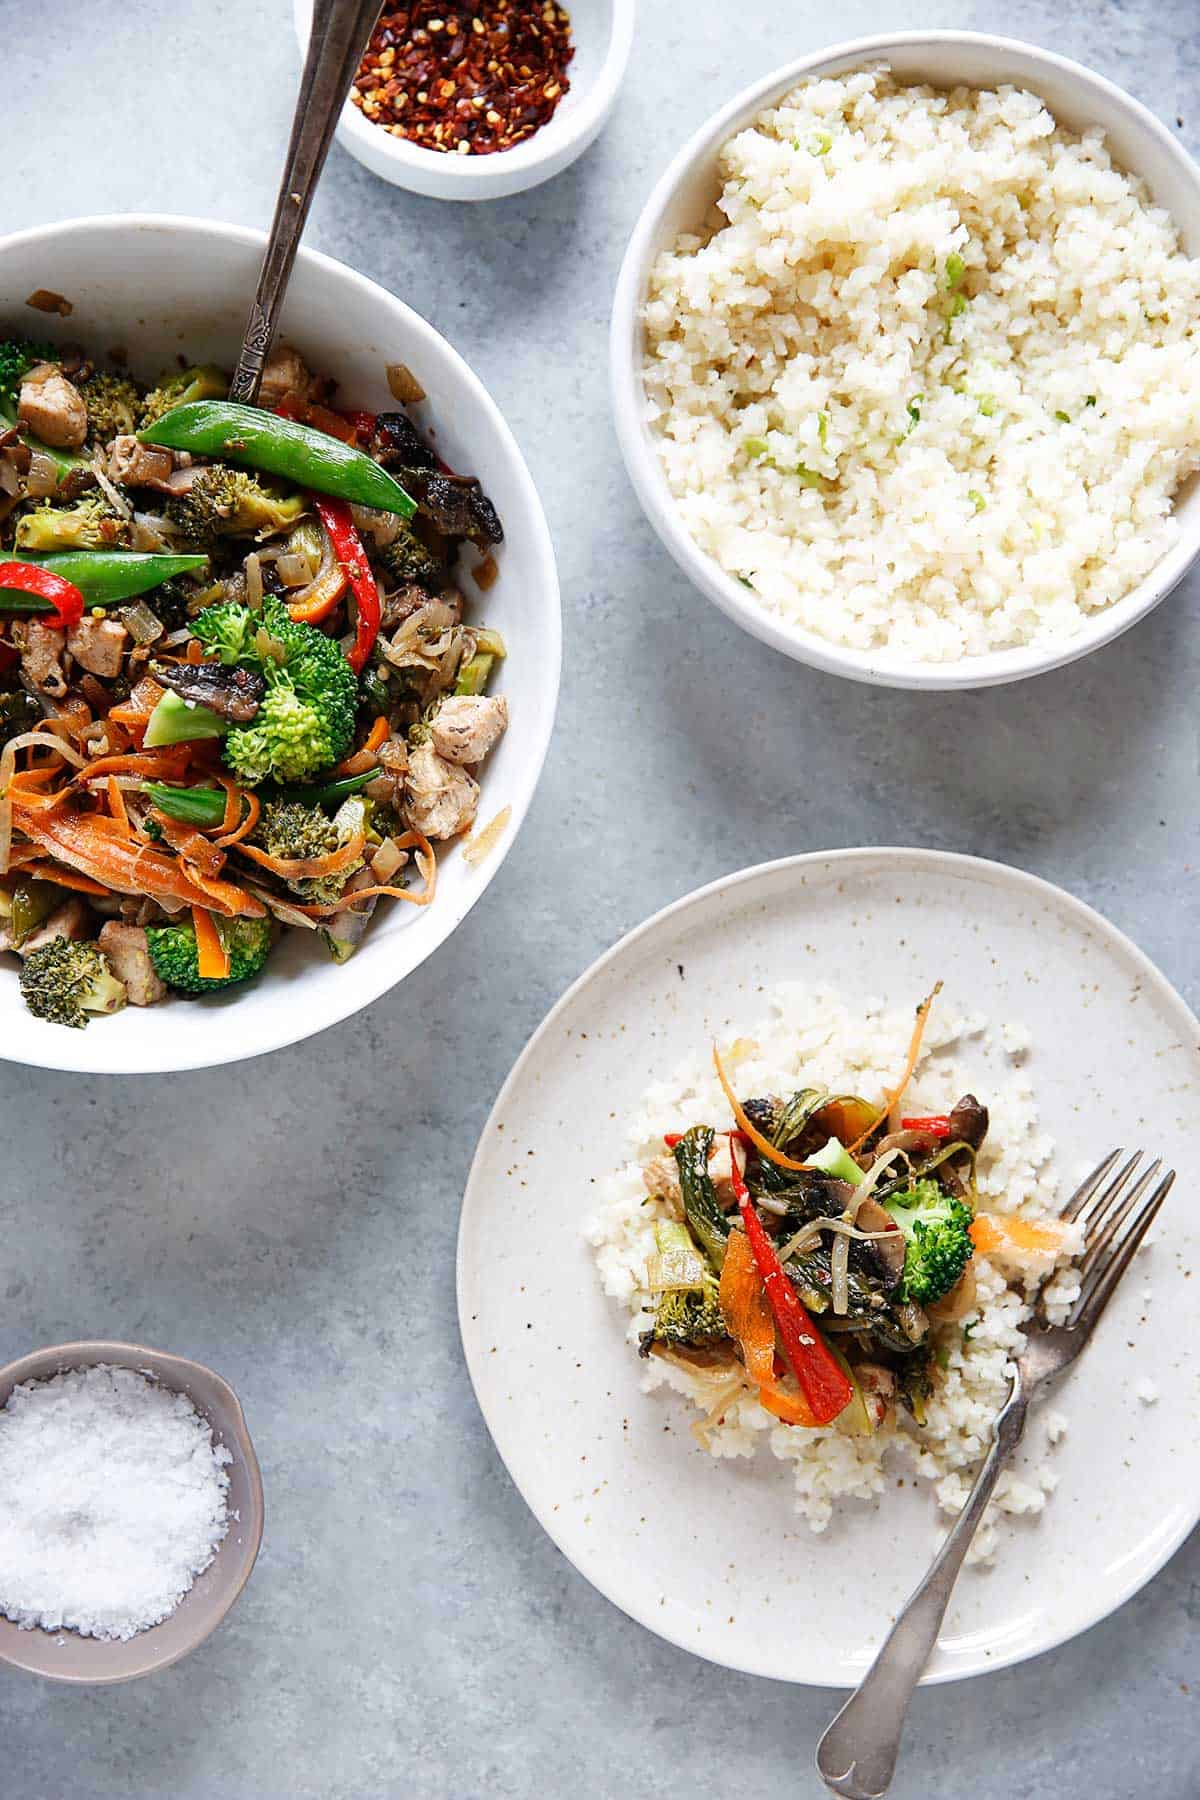 Paleo Chicken Stir Fry meal